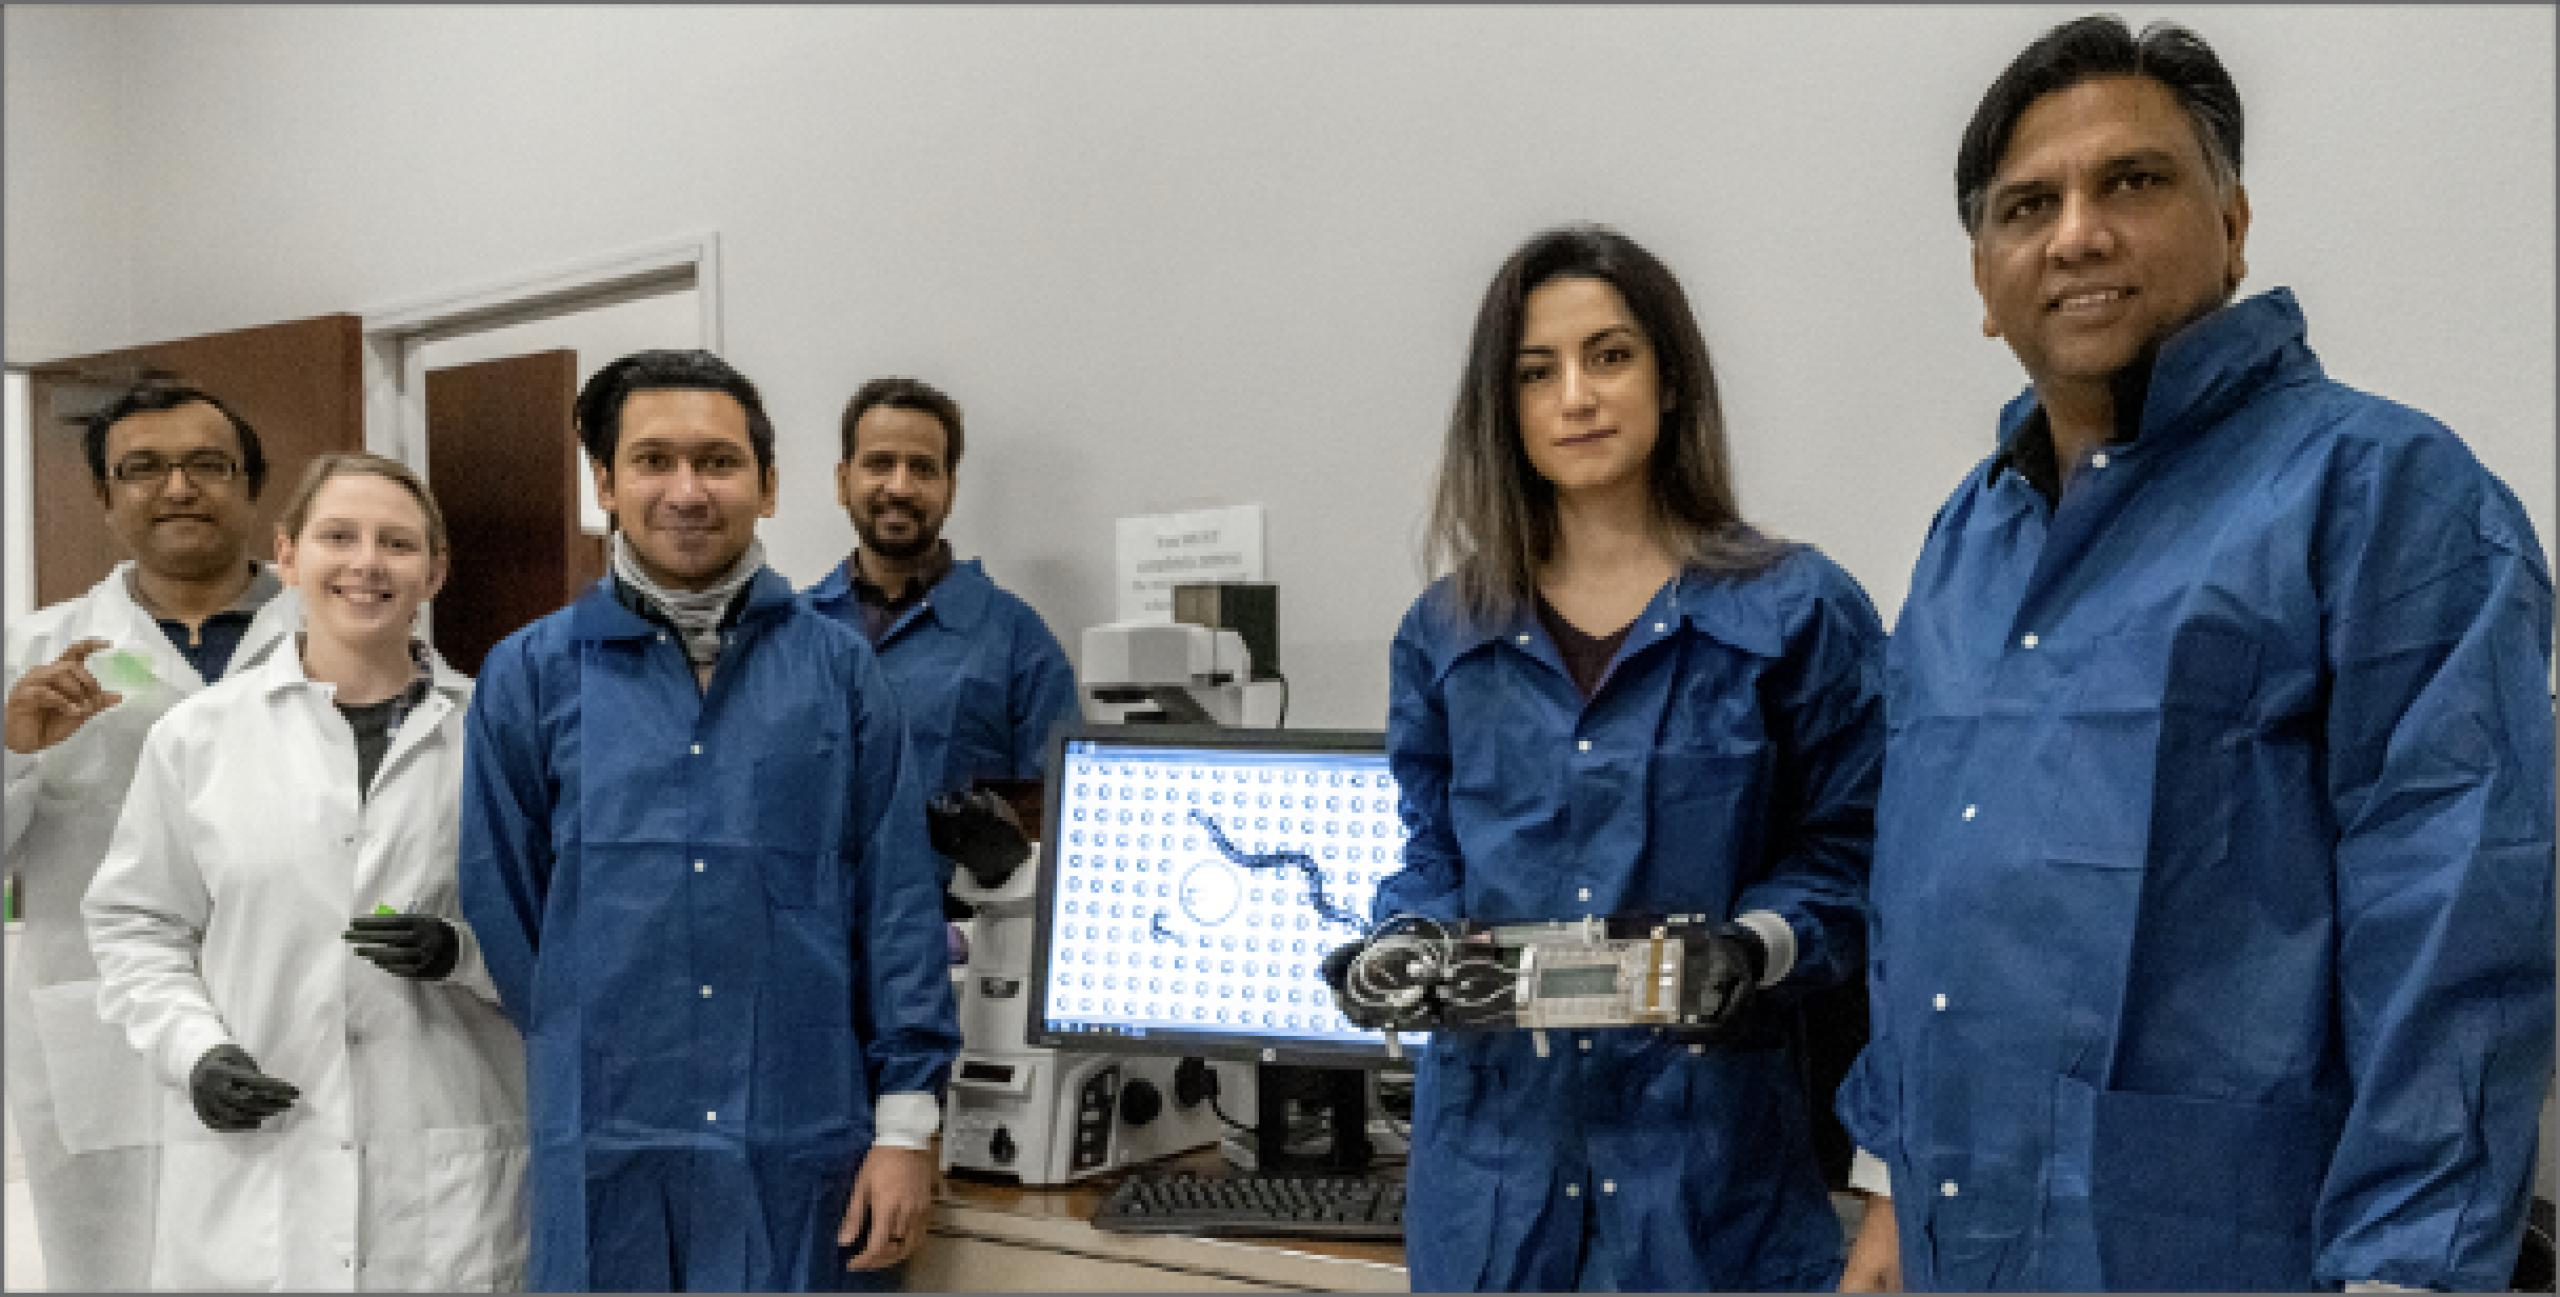 Group photo of 6 research scientists in blue and white lab gear holding lab equipment.